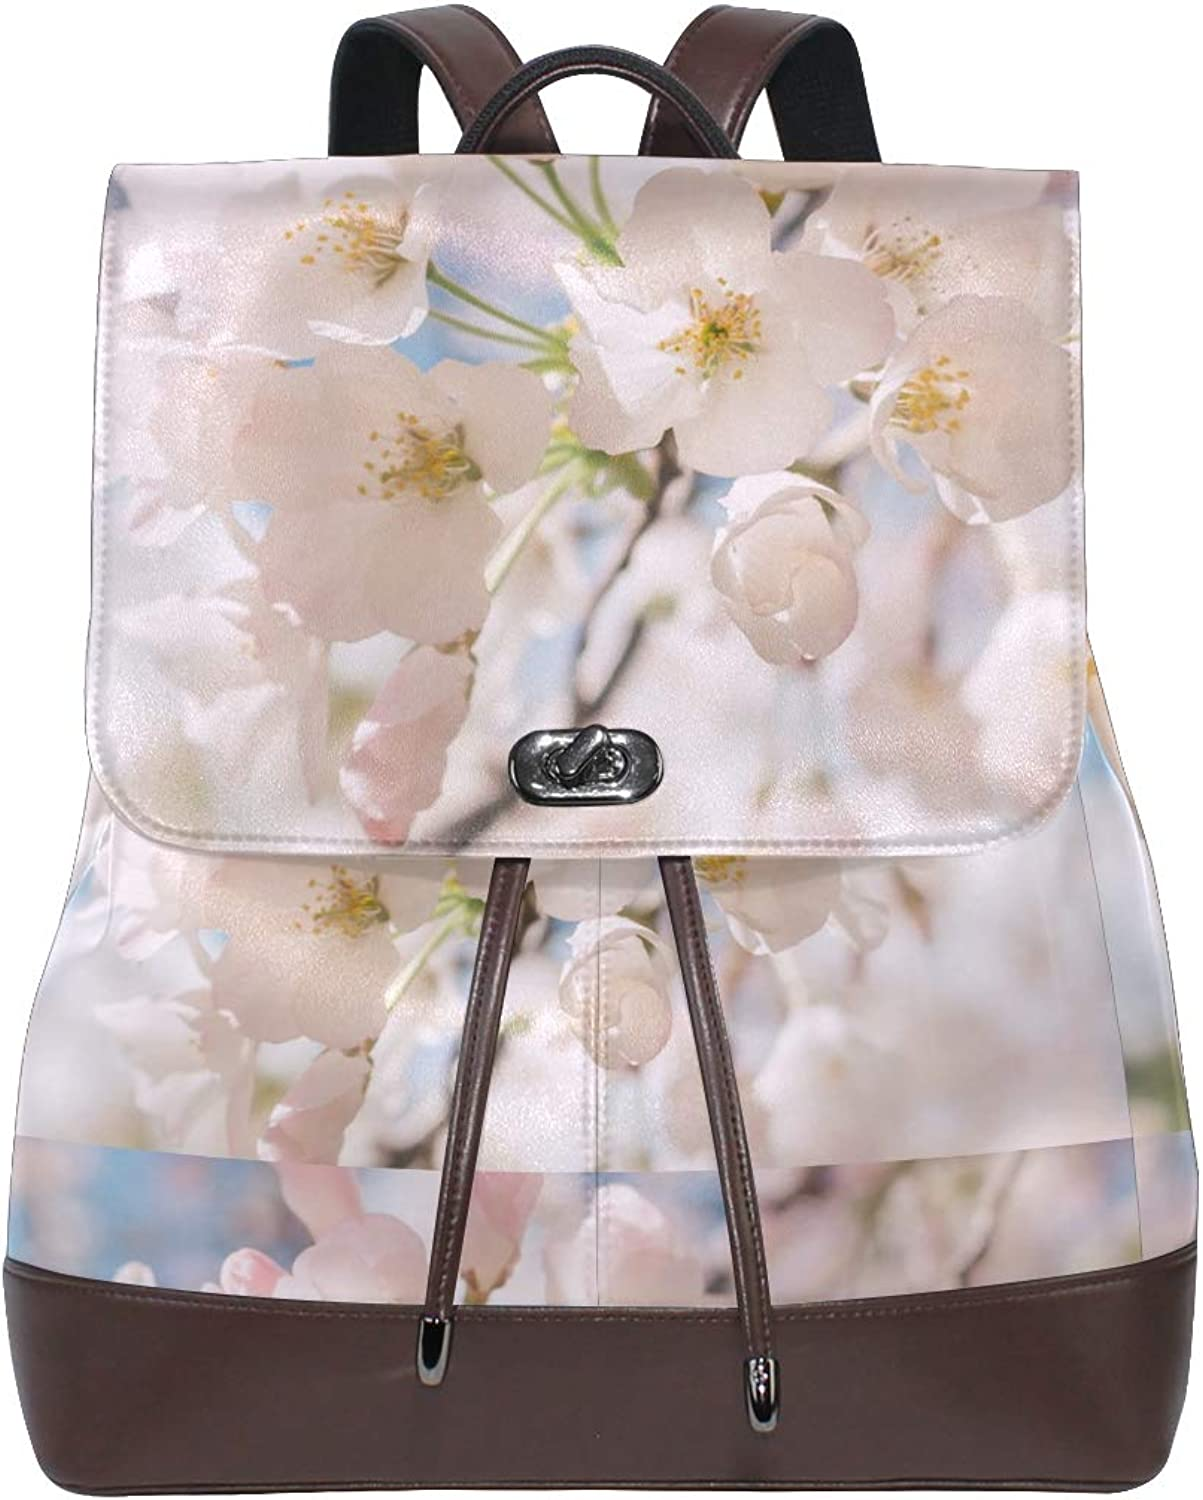 FAJRO Adorable Pretty SakuraTravel Backpack Leather Handbag School Pack